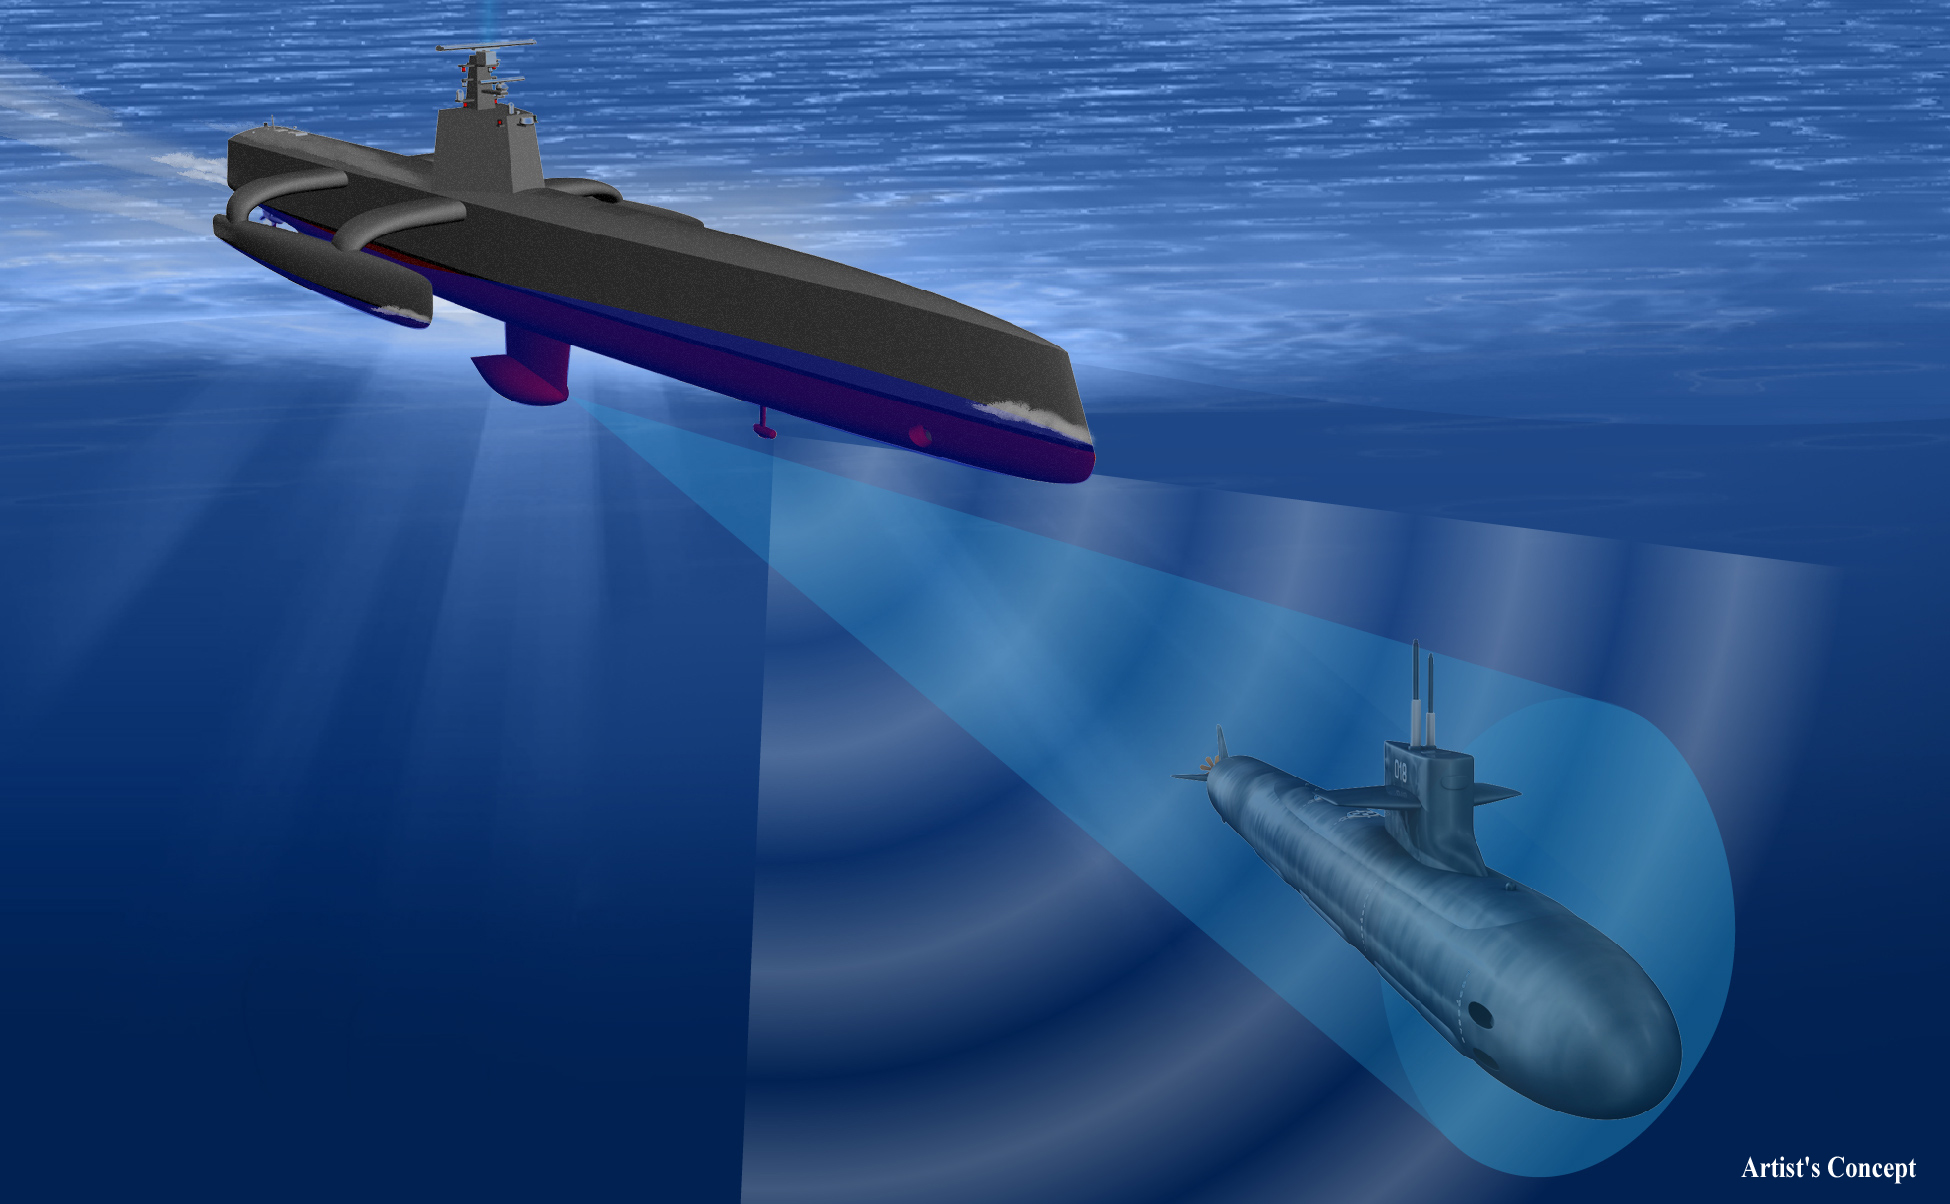 The DARPA Anti-Submarine Warfare